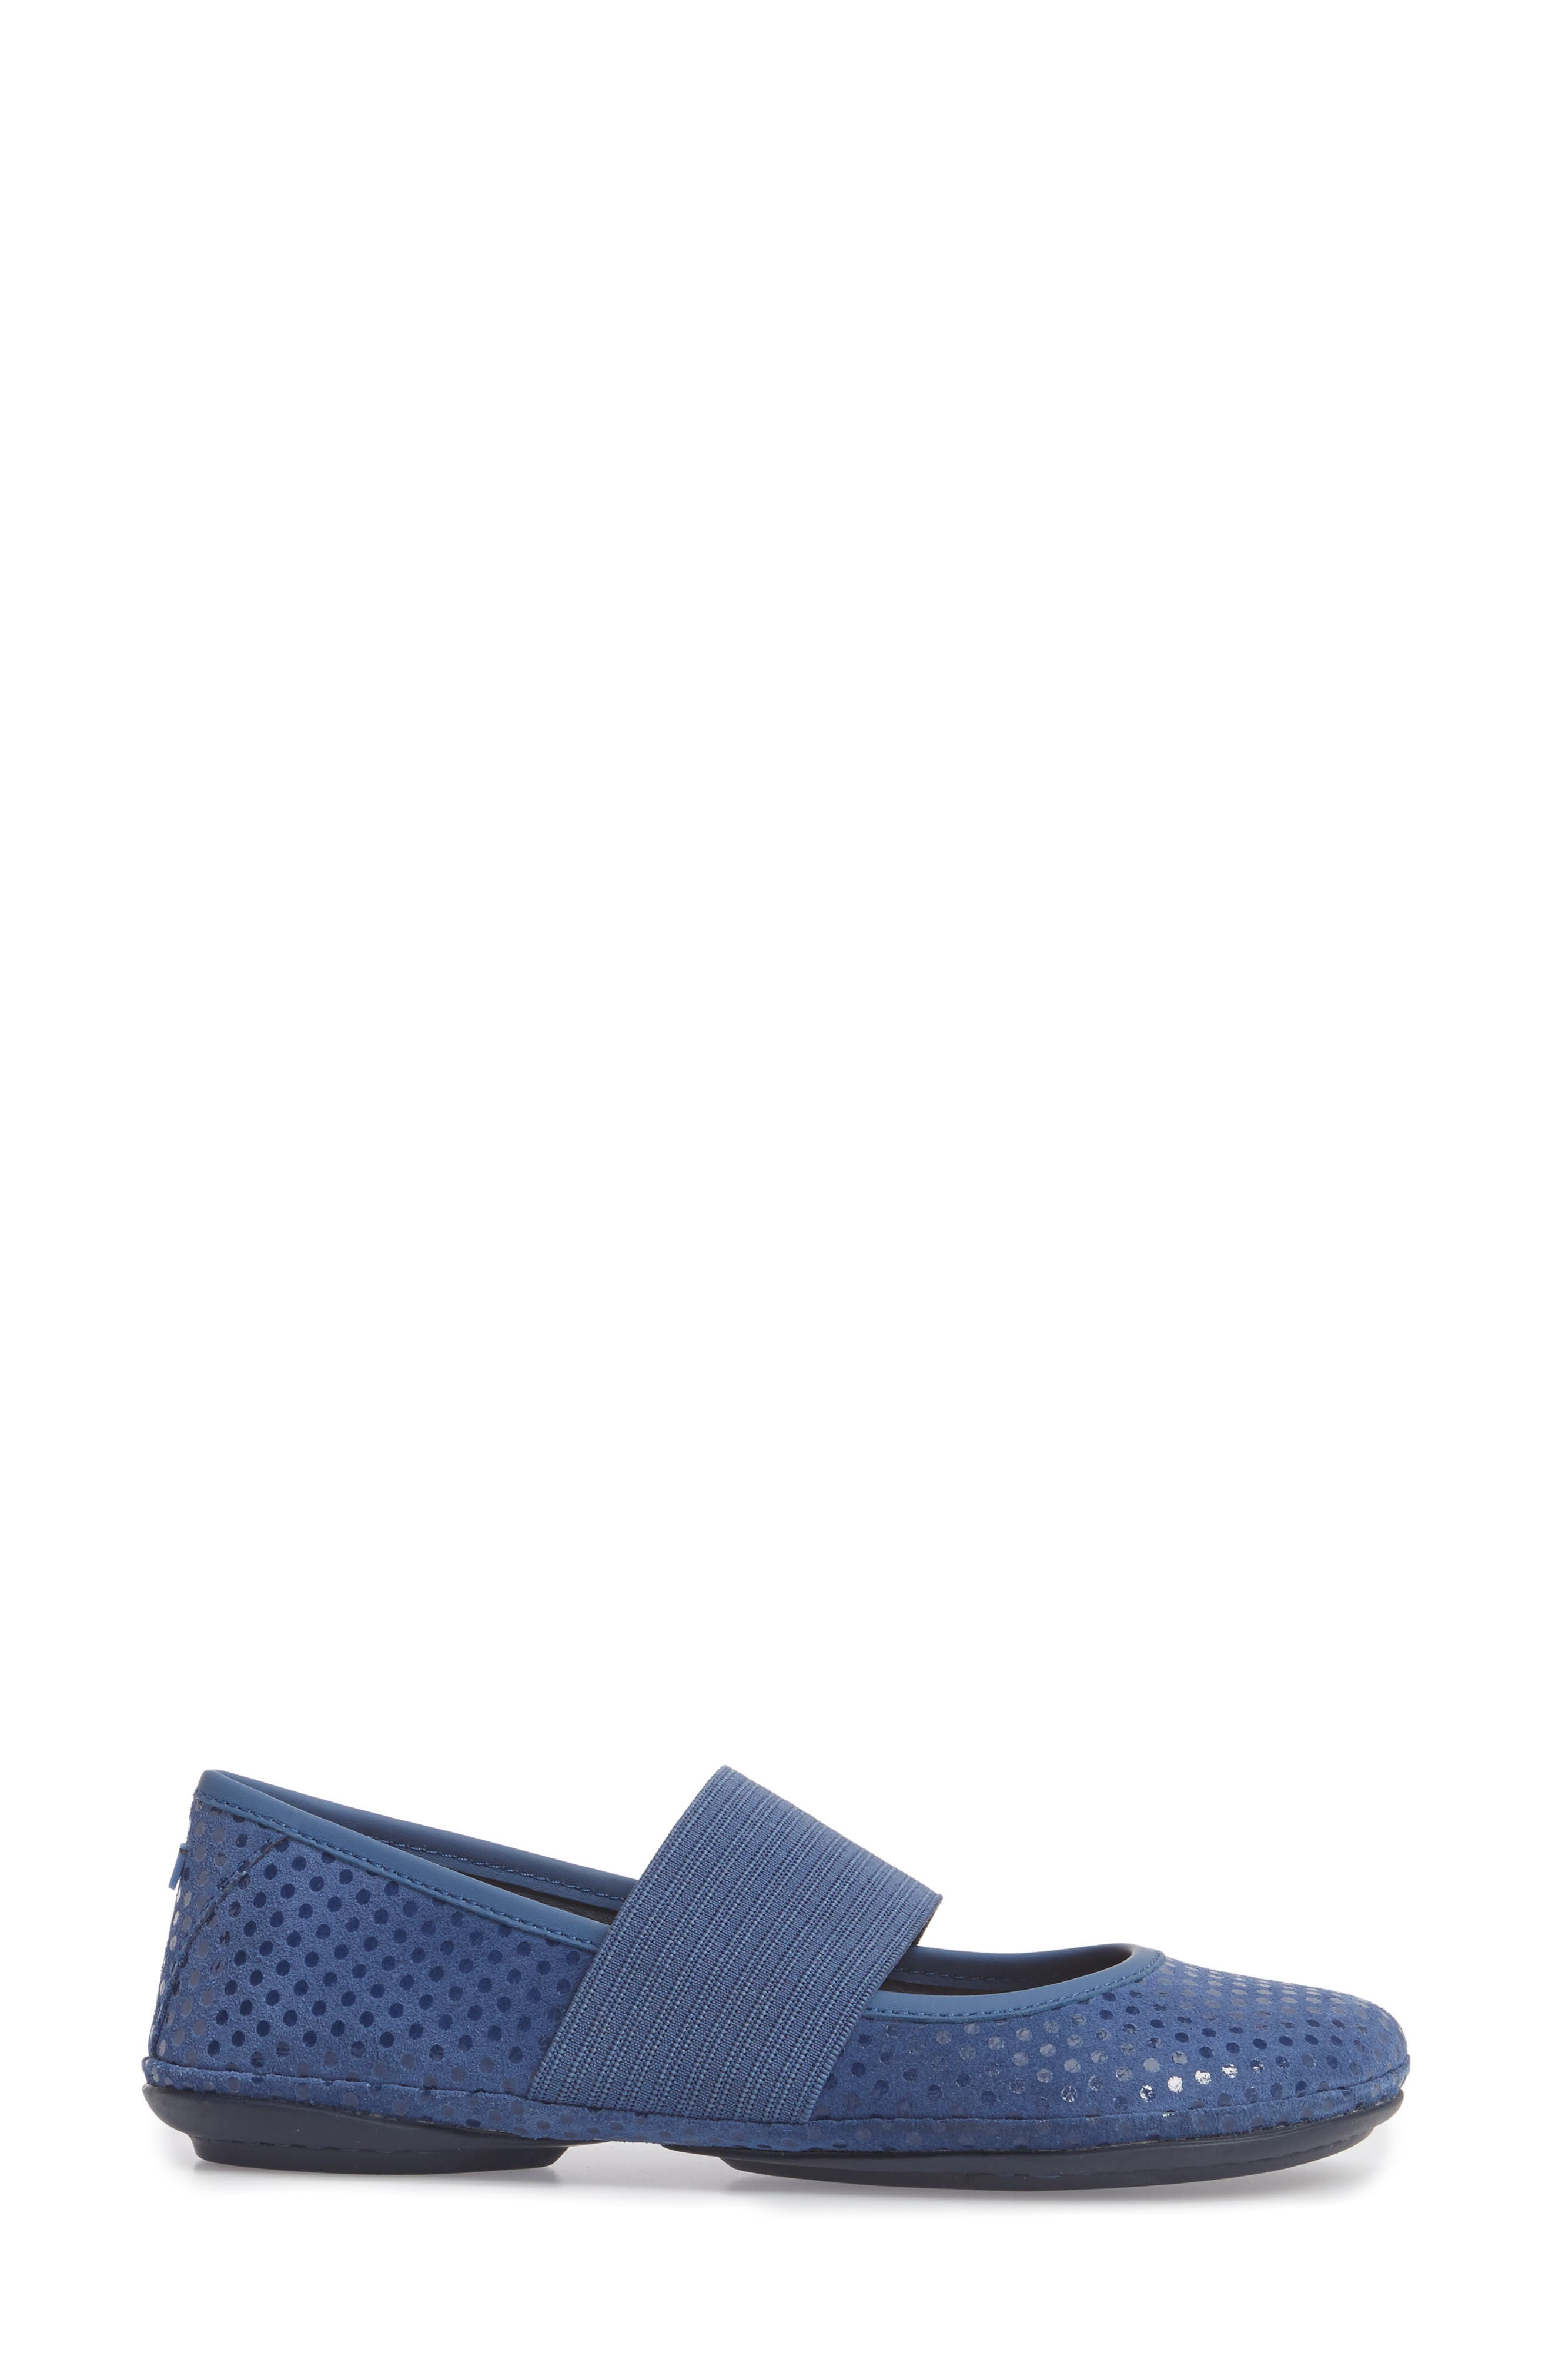 Right Nina Ballerina Flat,                             Alternate thumbnail 3, color,                             Medium Blue Nubuck